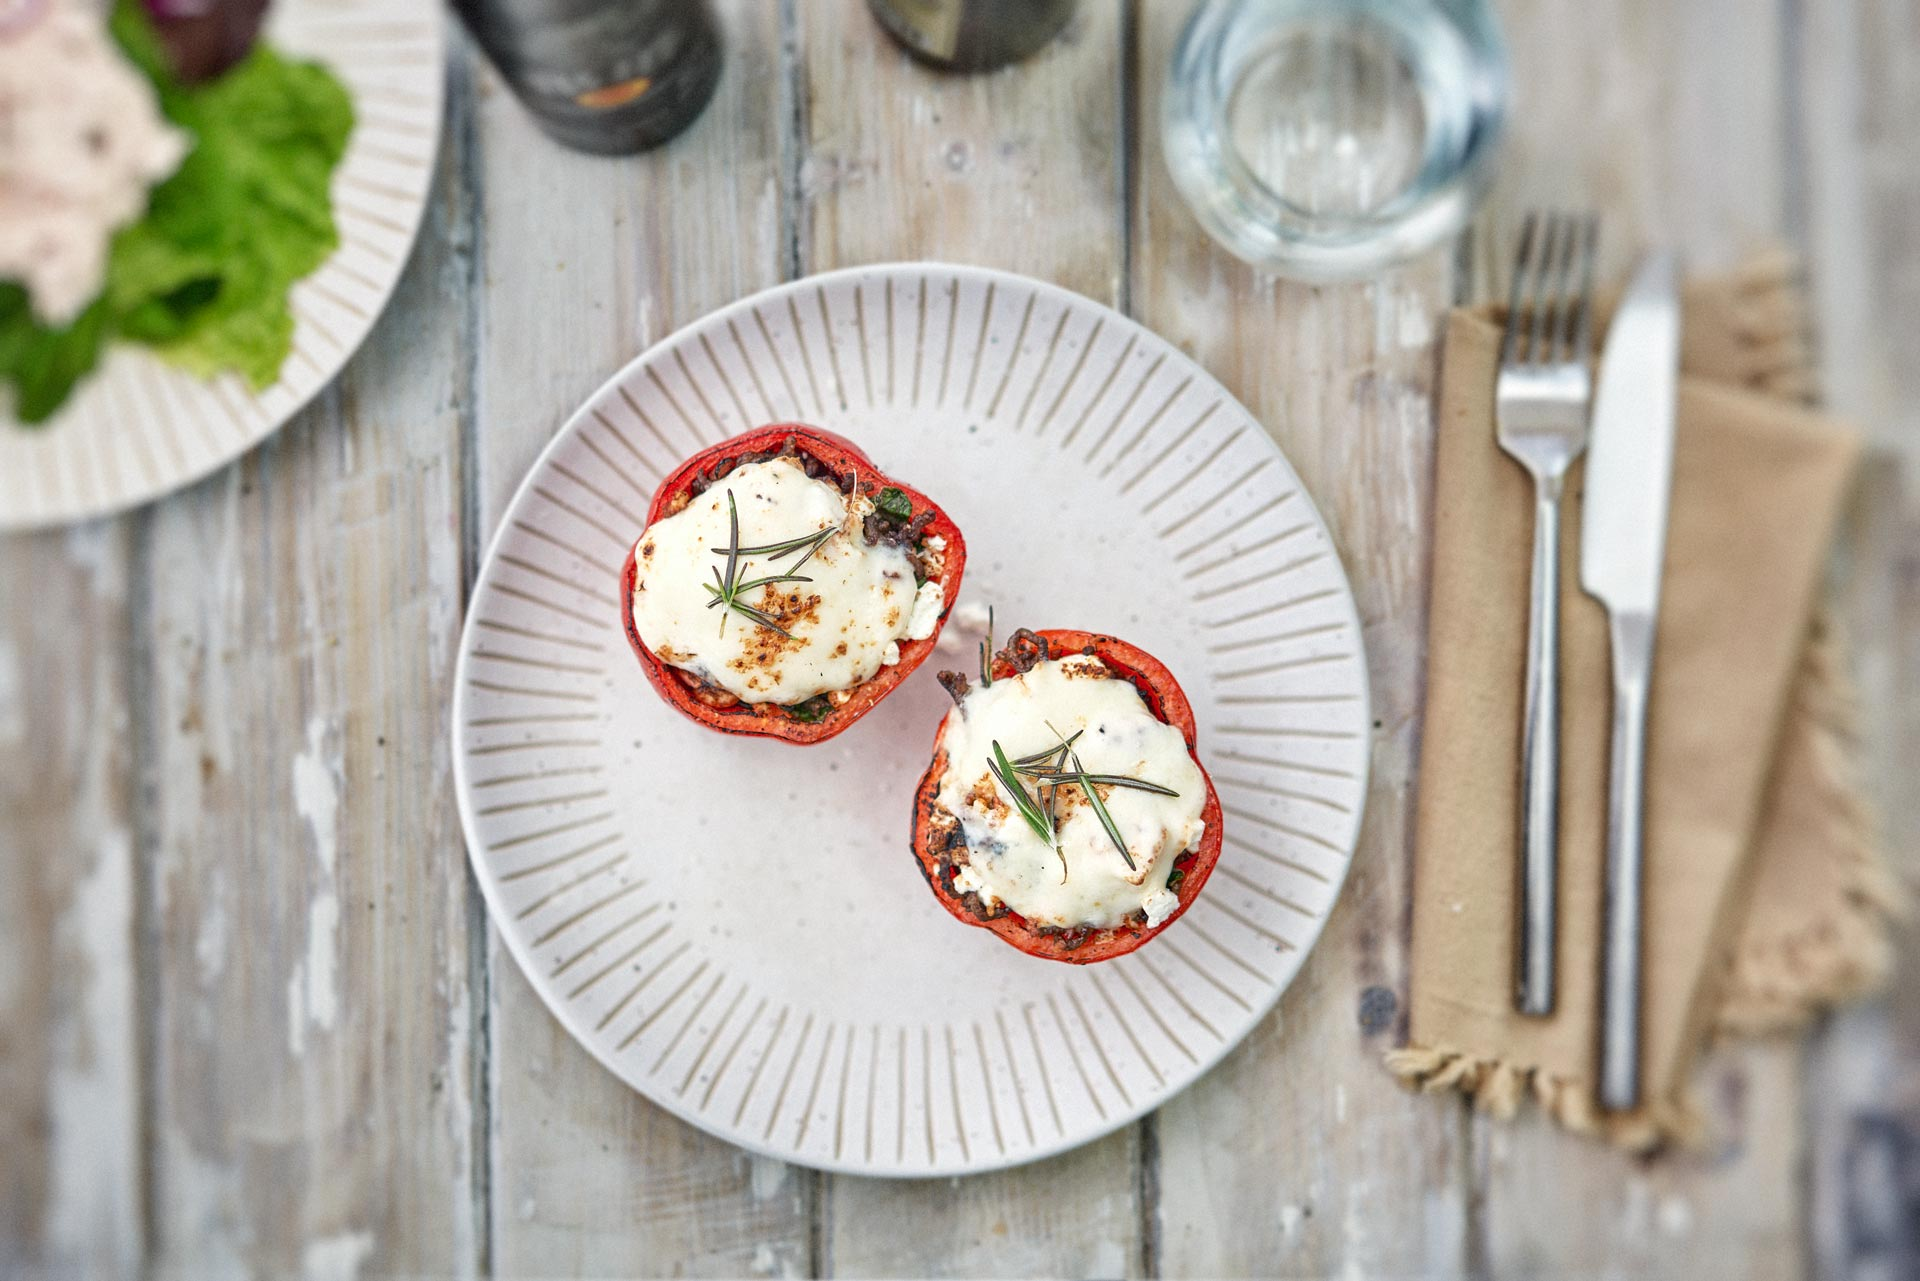 Stuffed Red Peppers. Low Carb High Fat Meal. Melted Mozzarella cheese on mincemeat, inside a cooked pepper. on a cream plate, on a wooden table.